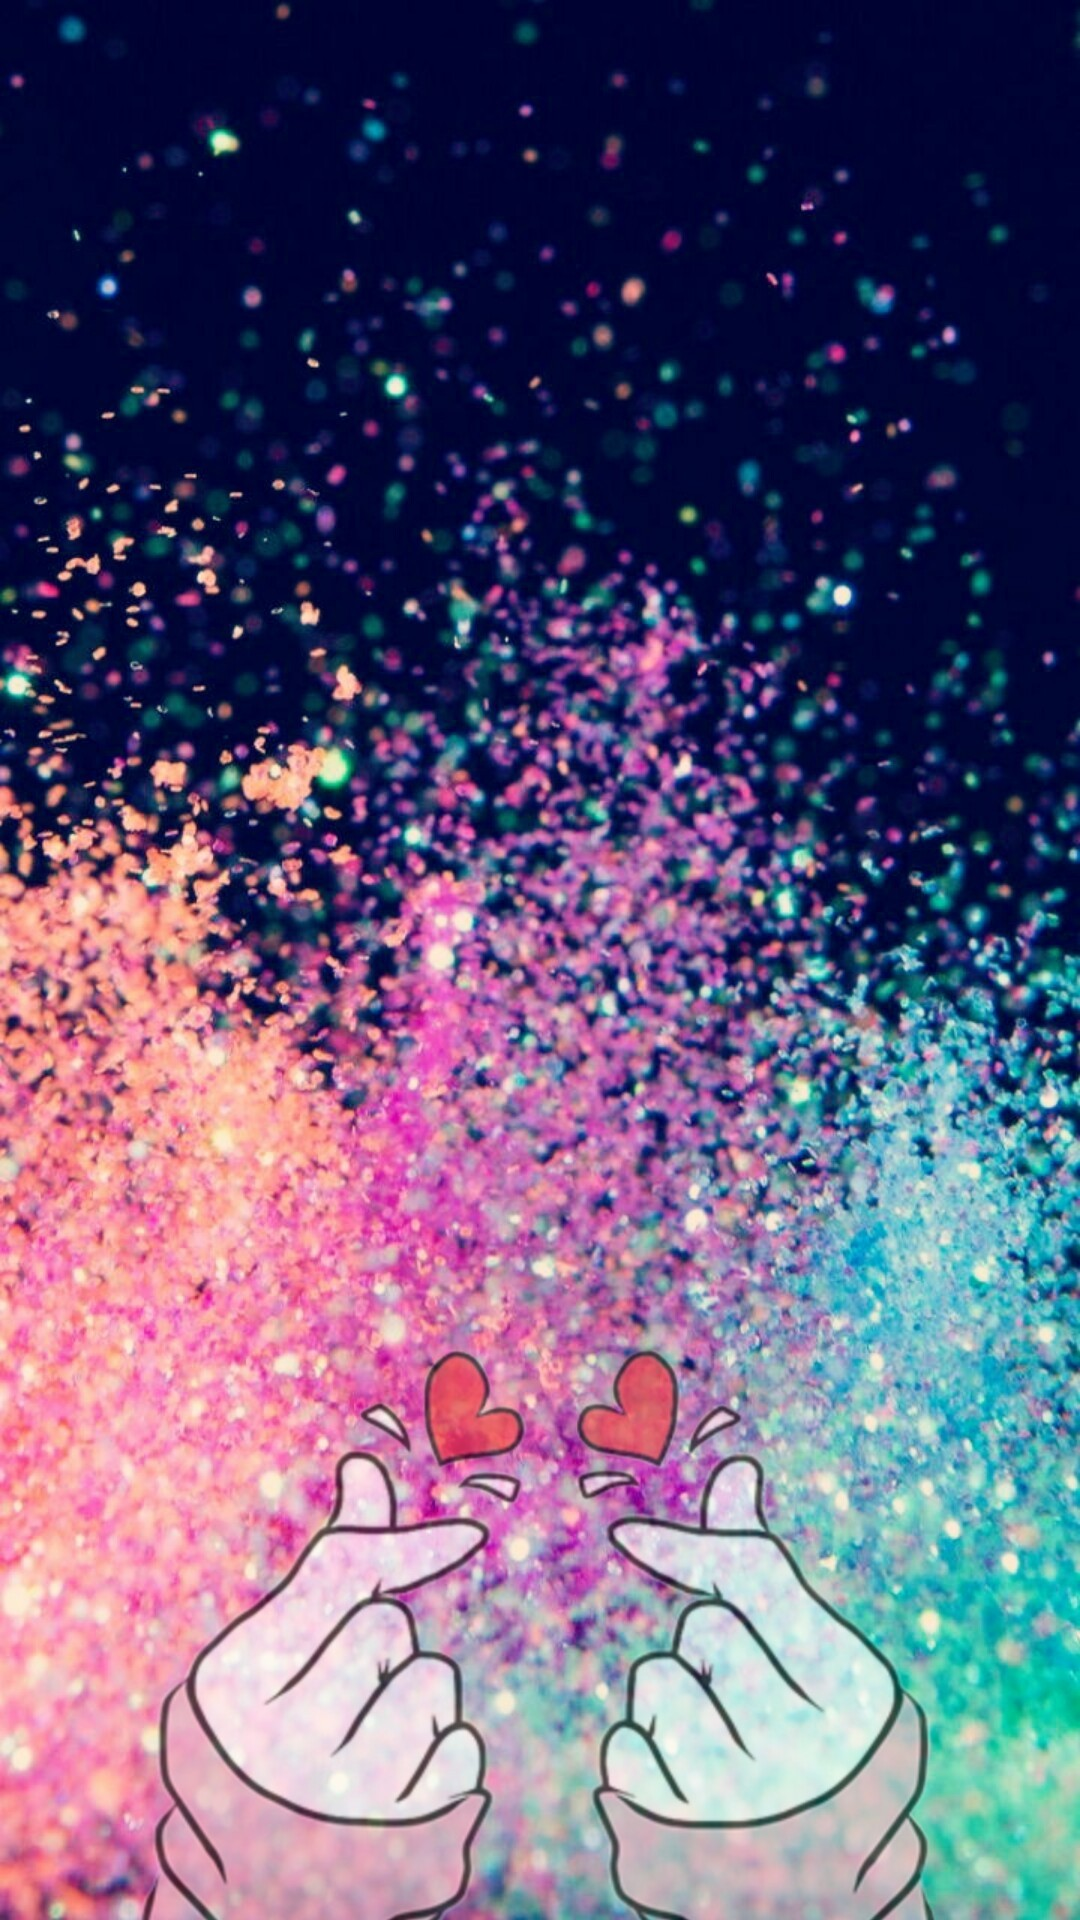 Sparkle iPhone hd wallpaper